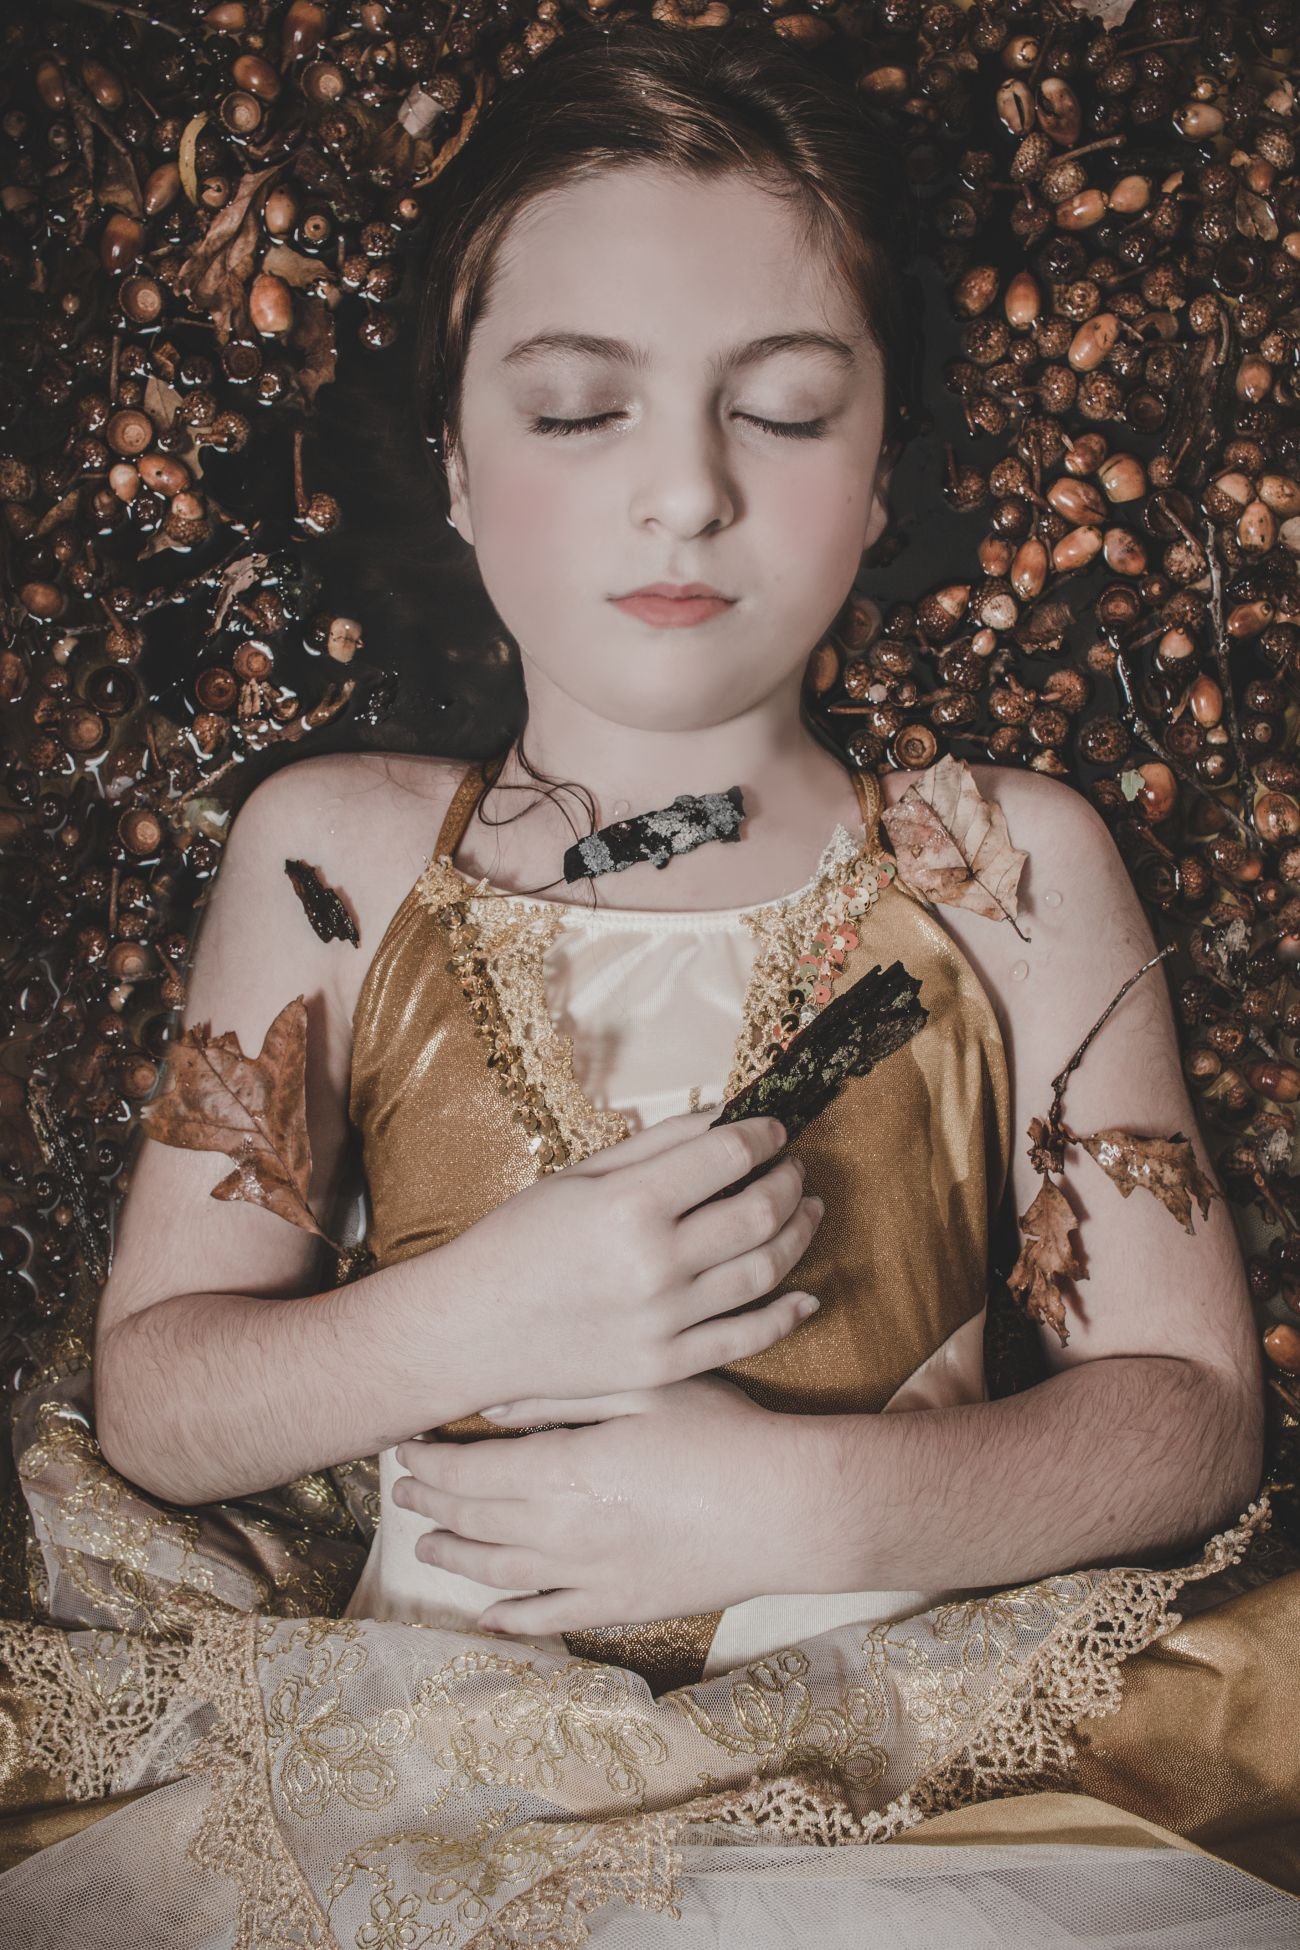 Girl in the Garden laying down in acorns